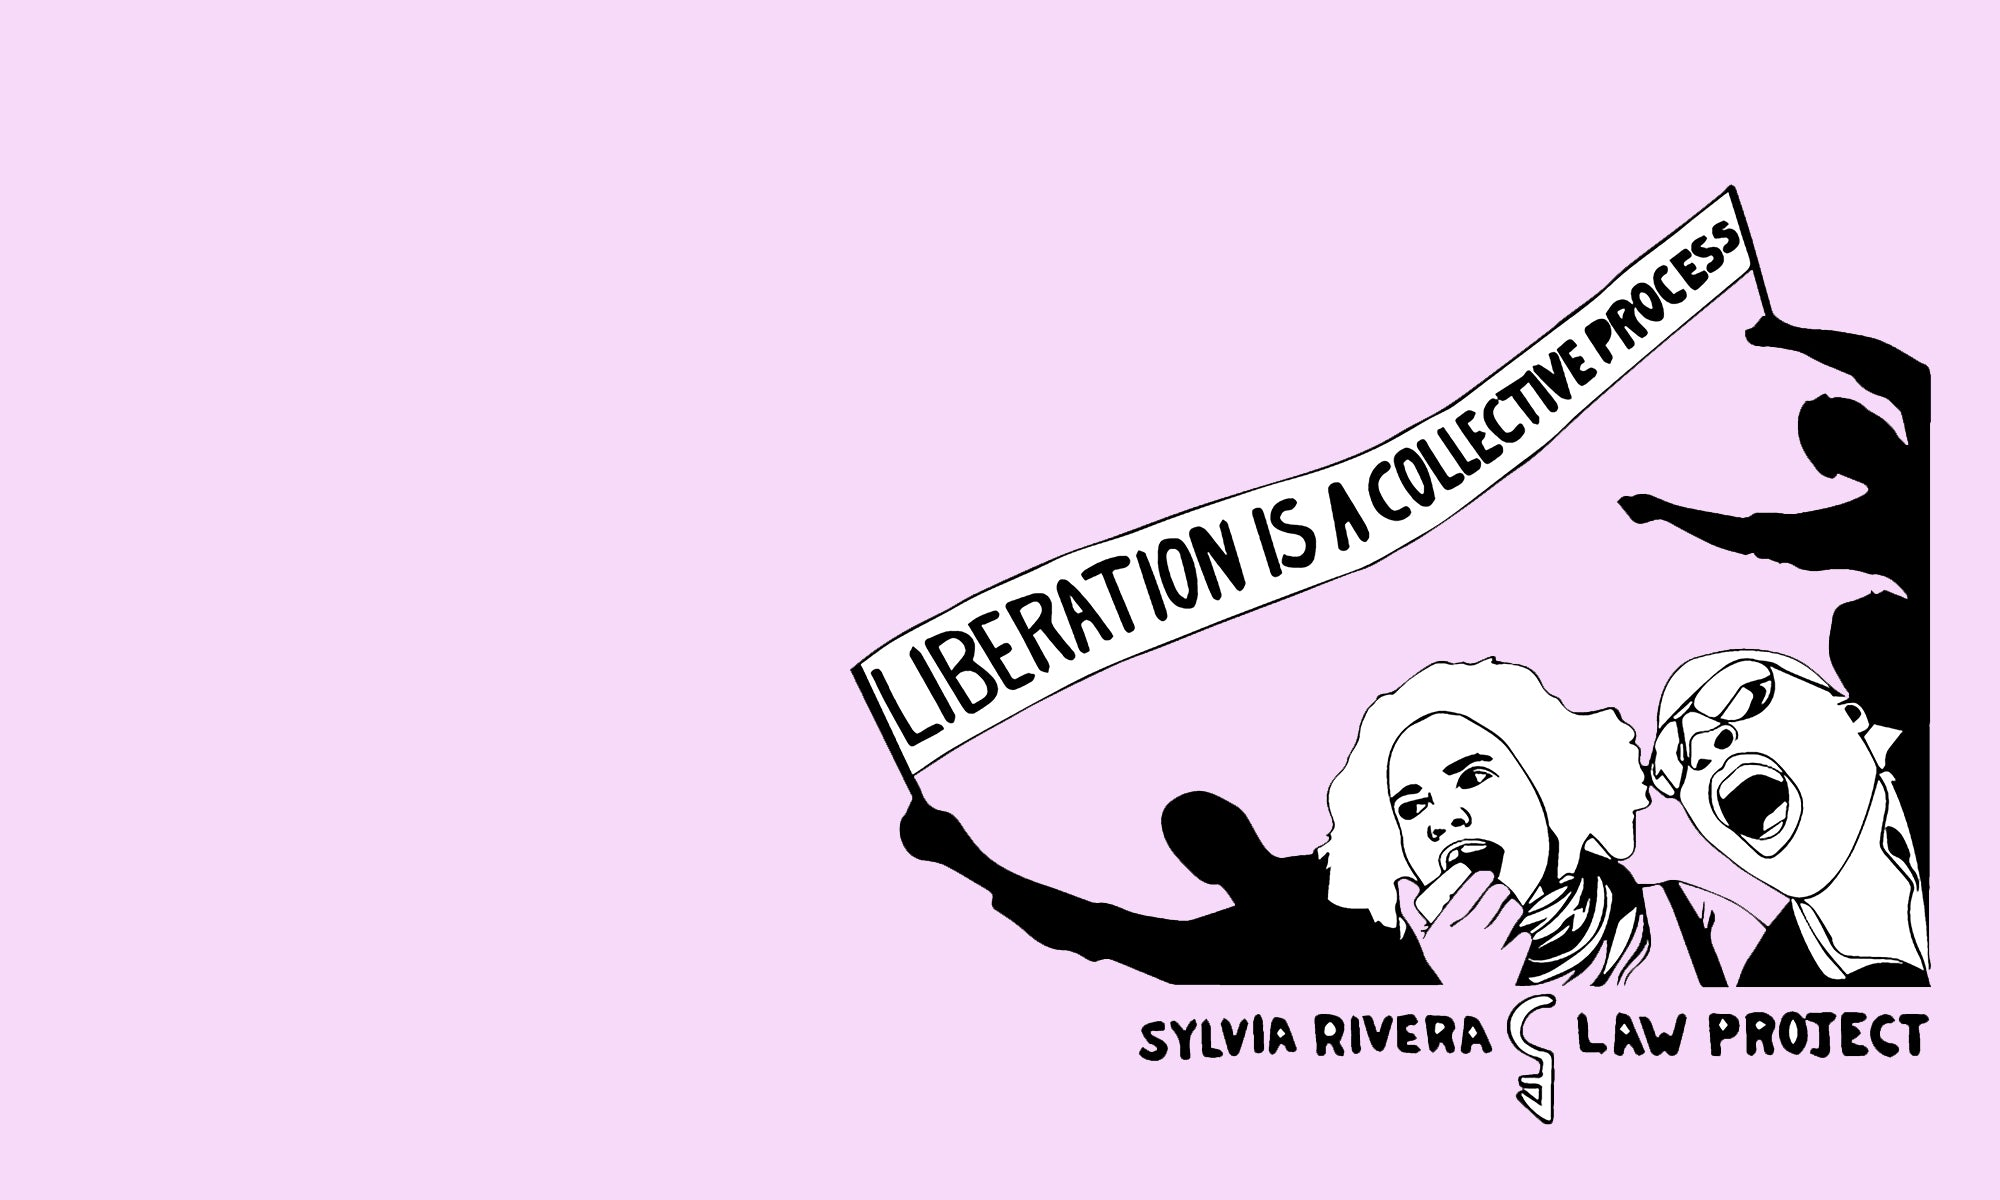 Sylvia Rivera Law Project image